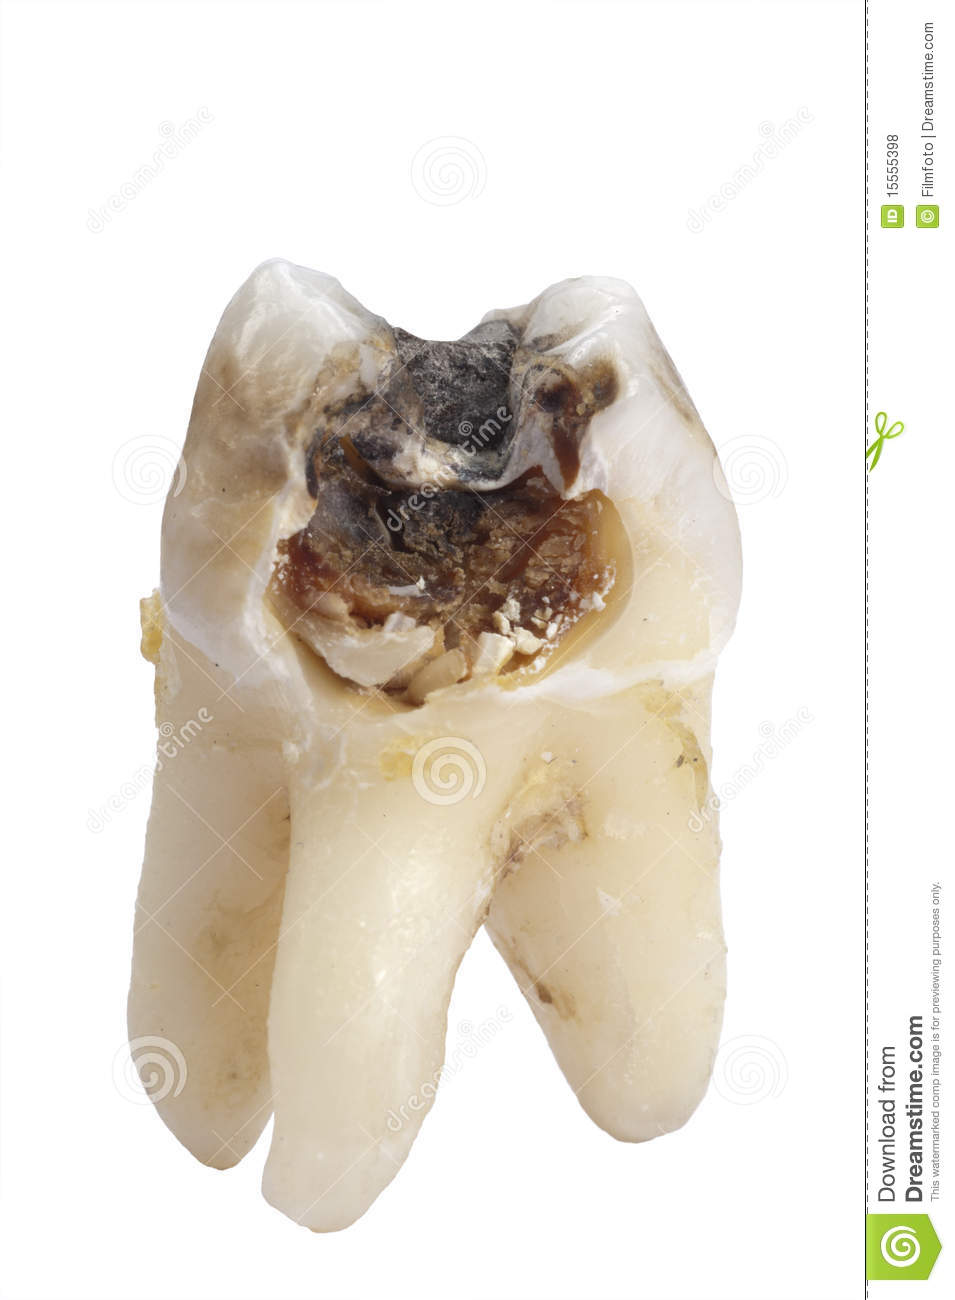 Tooth Dental Caries Royalty Free Stock Photos - Image: 15555398